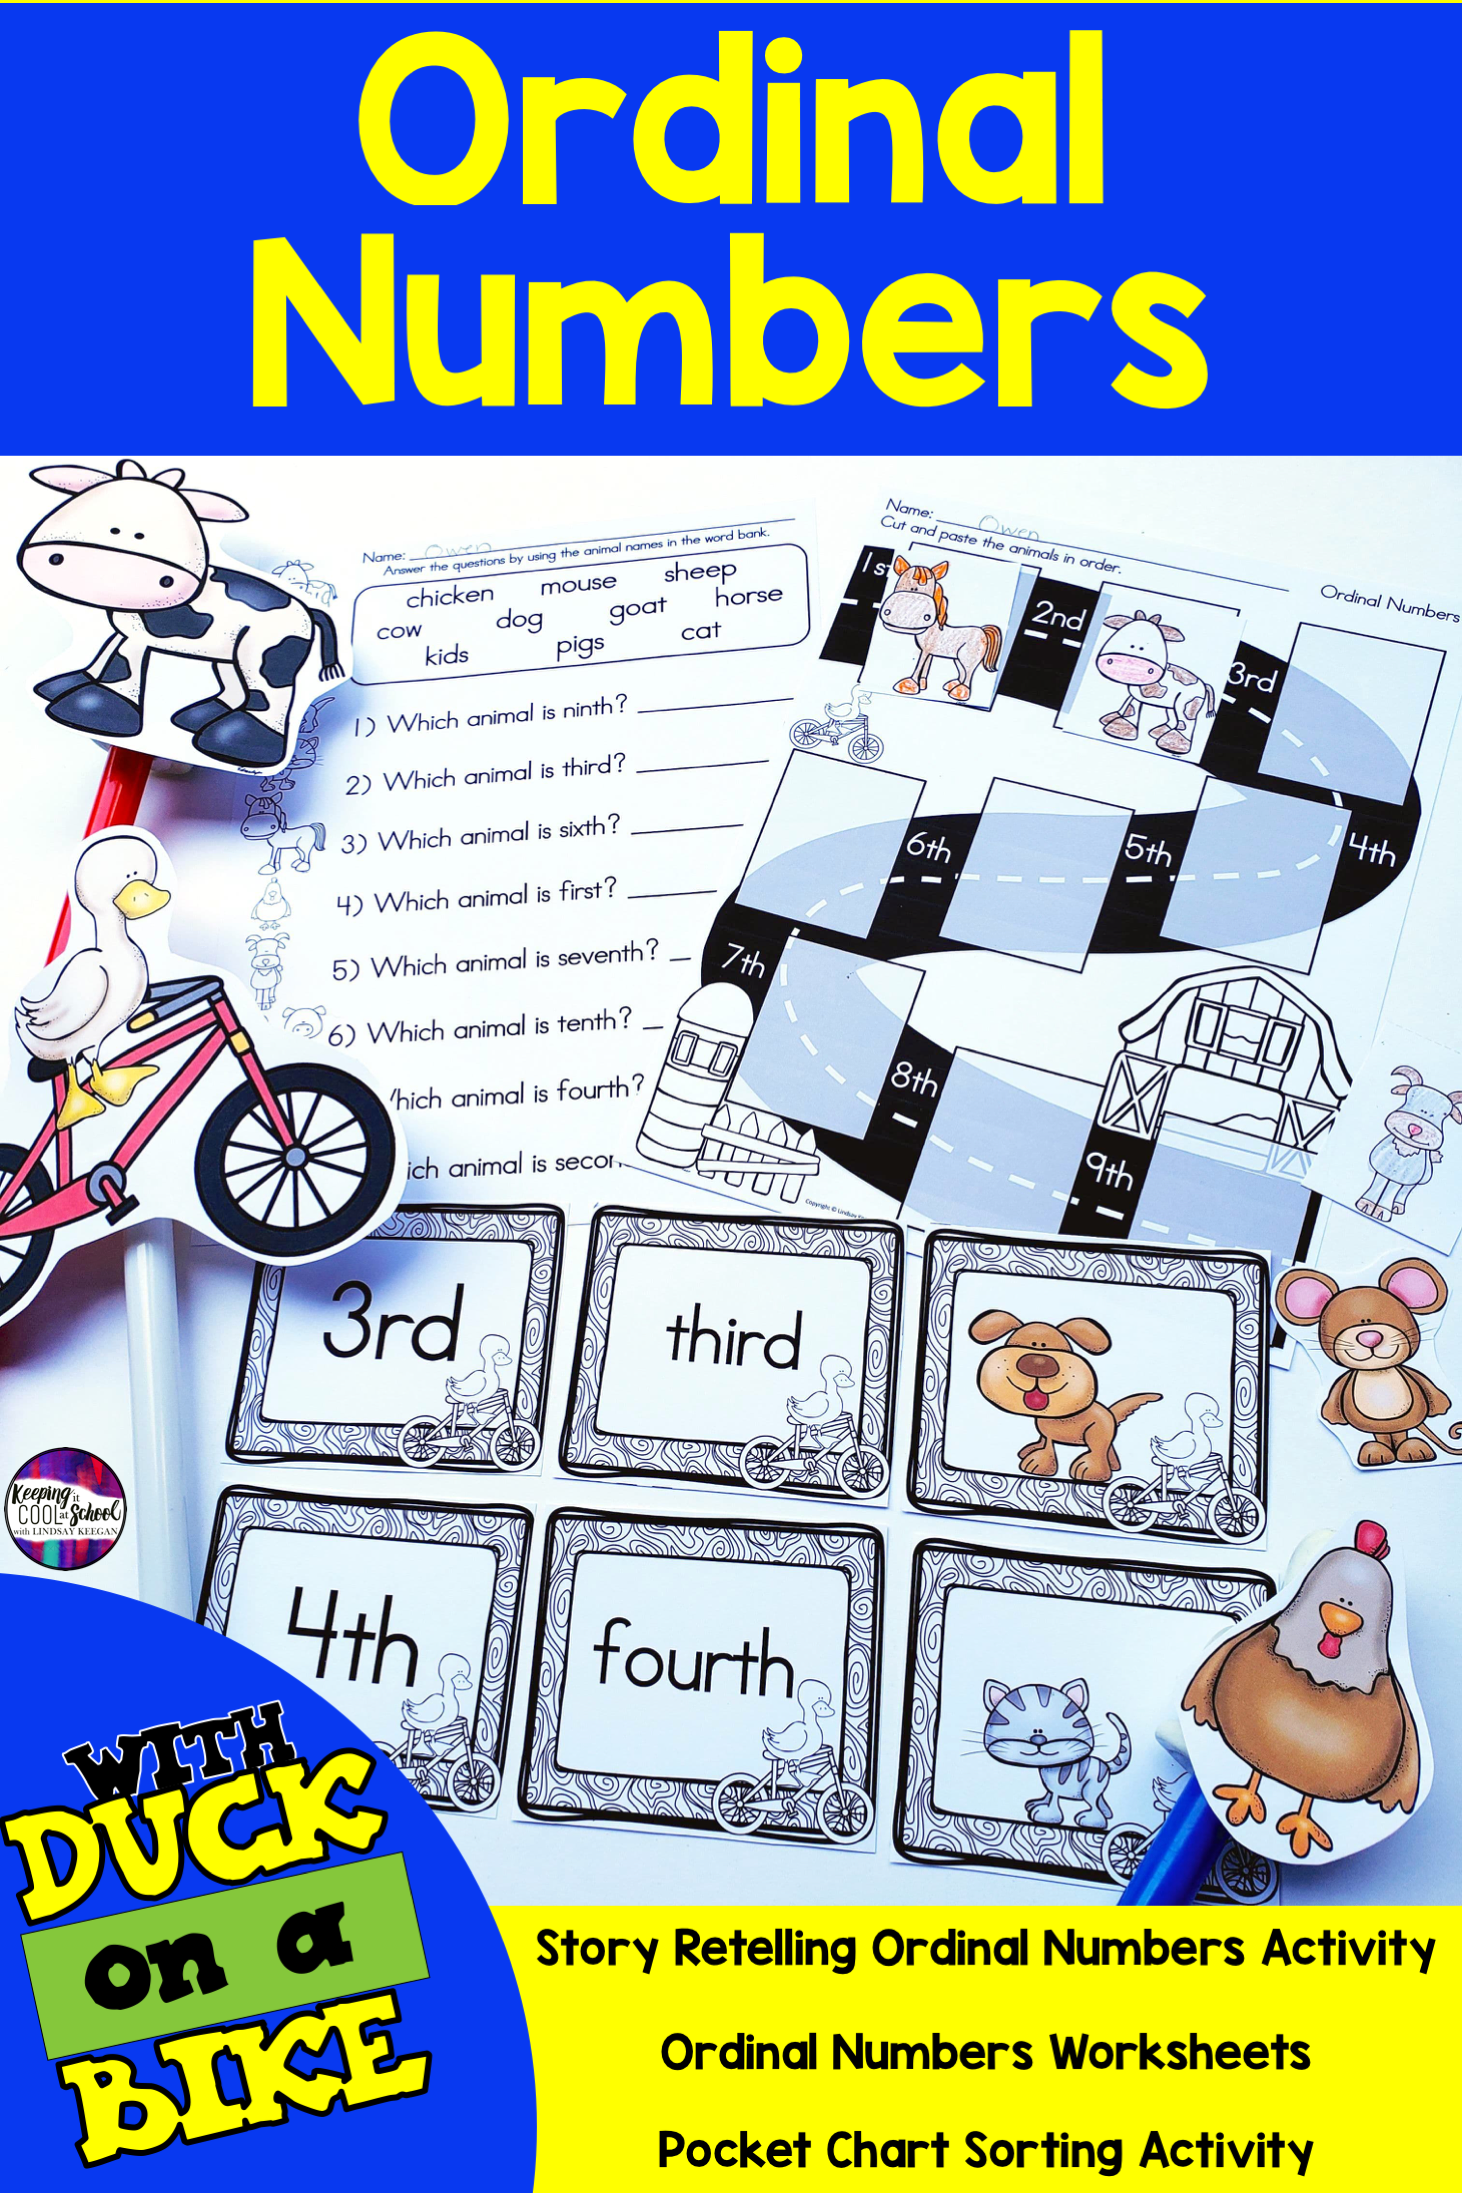 Ordinal Numbers Activities With Duck On A Bike